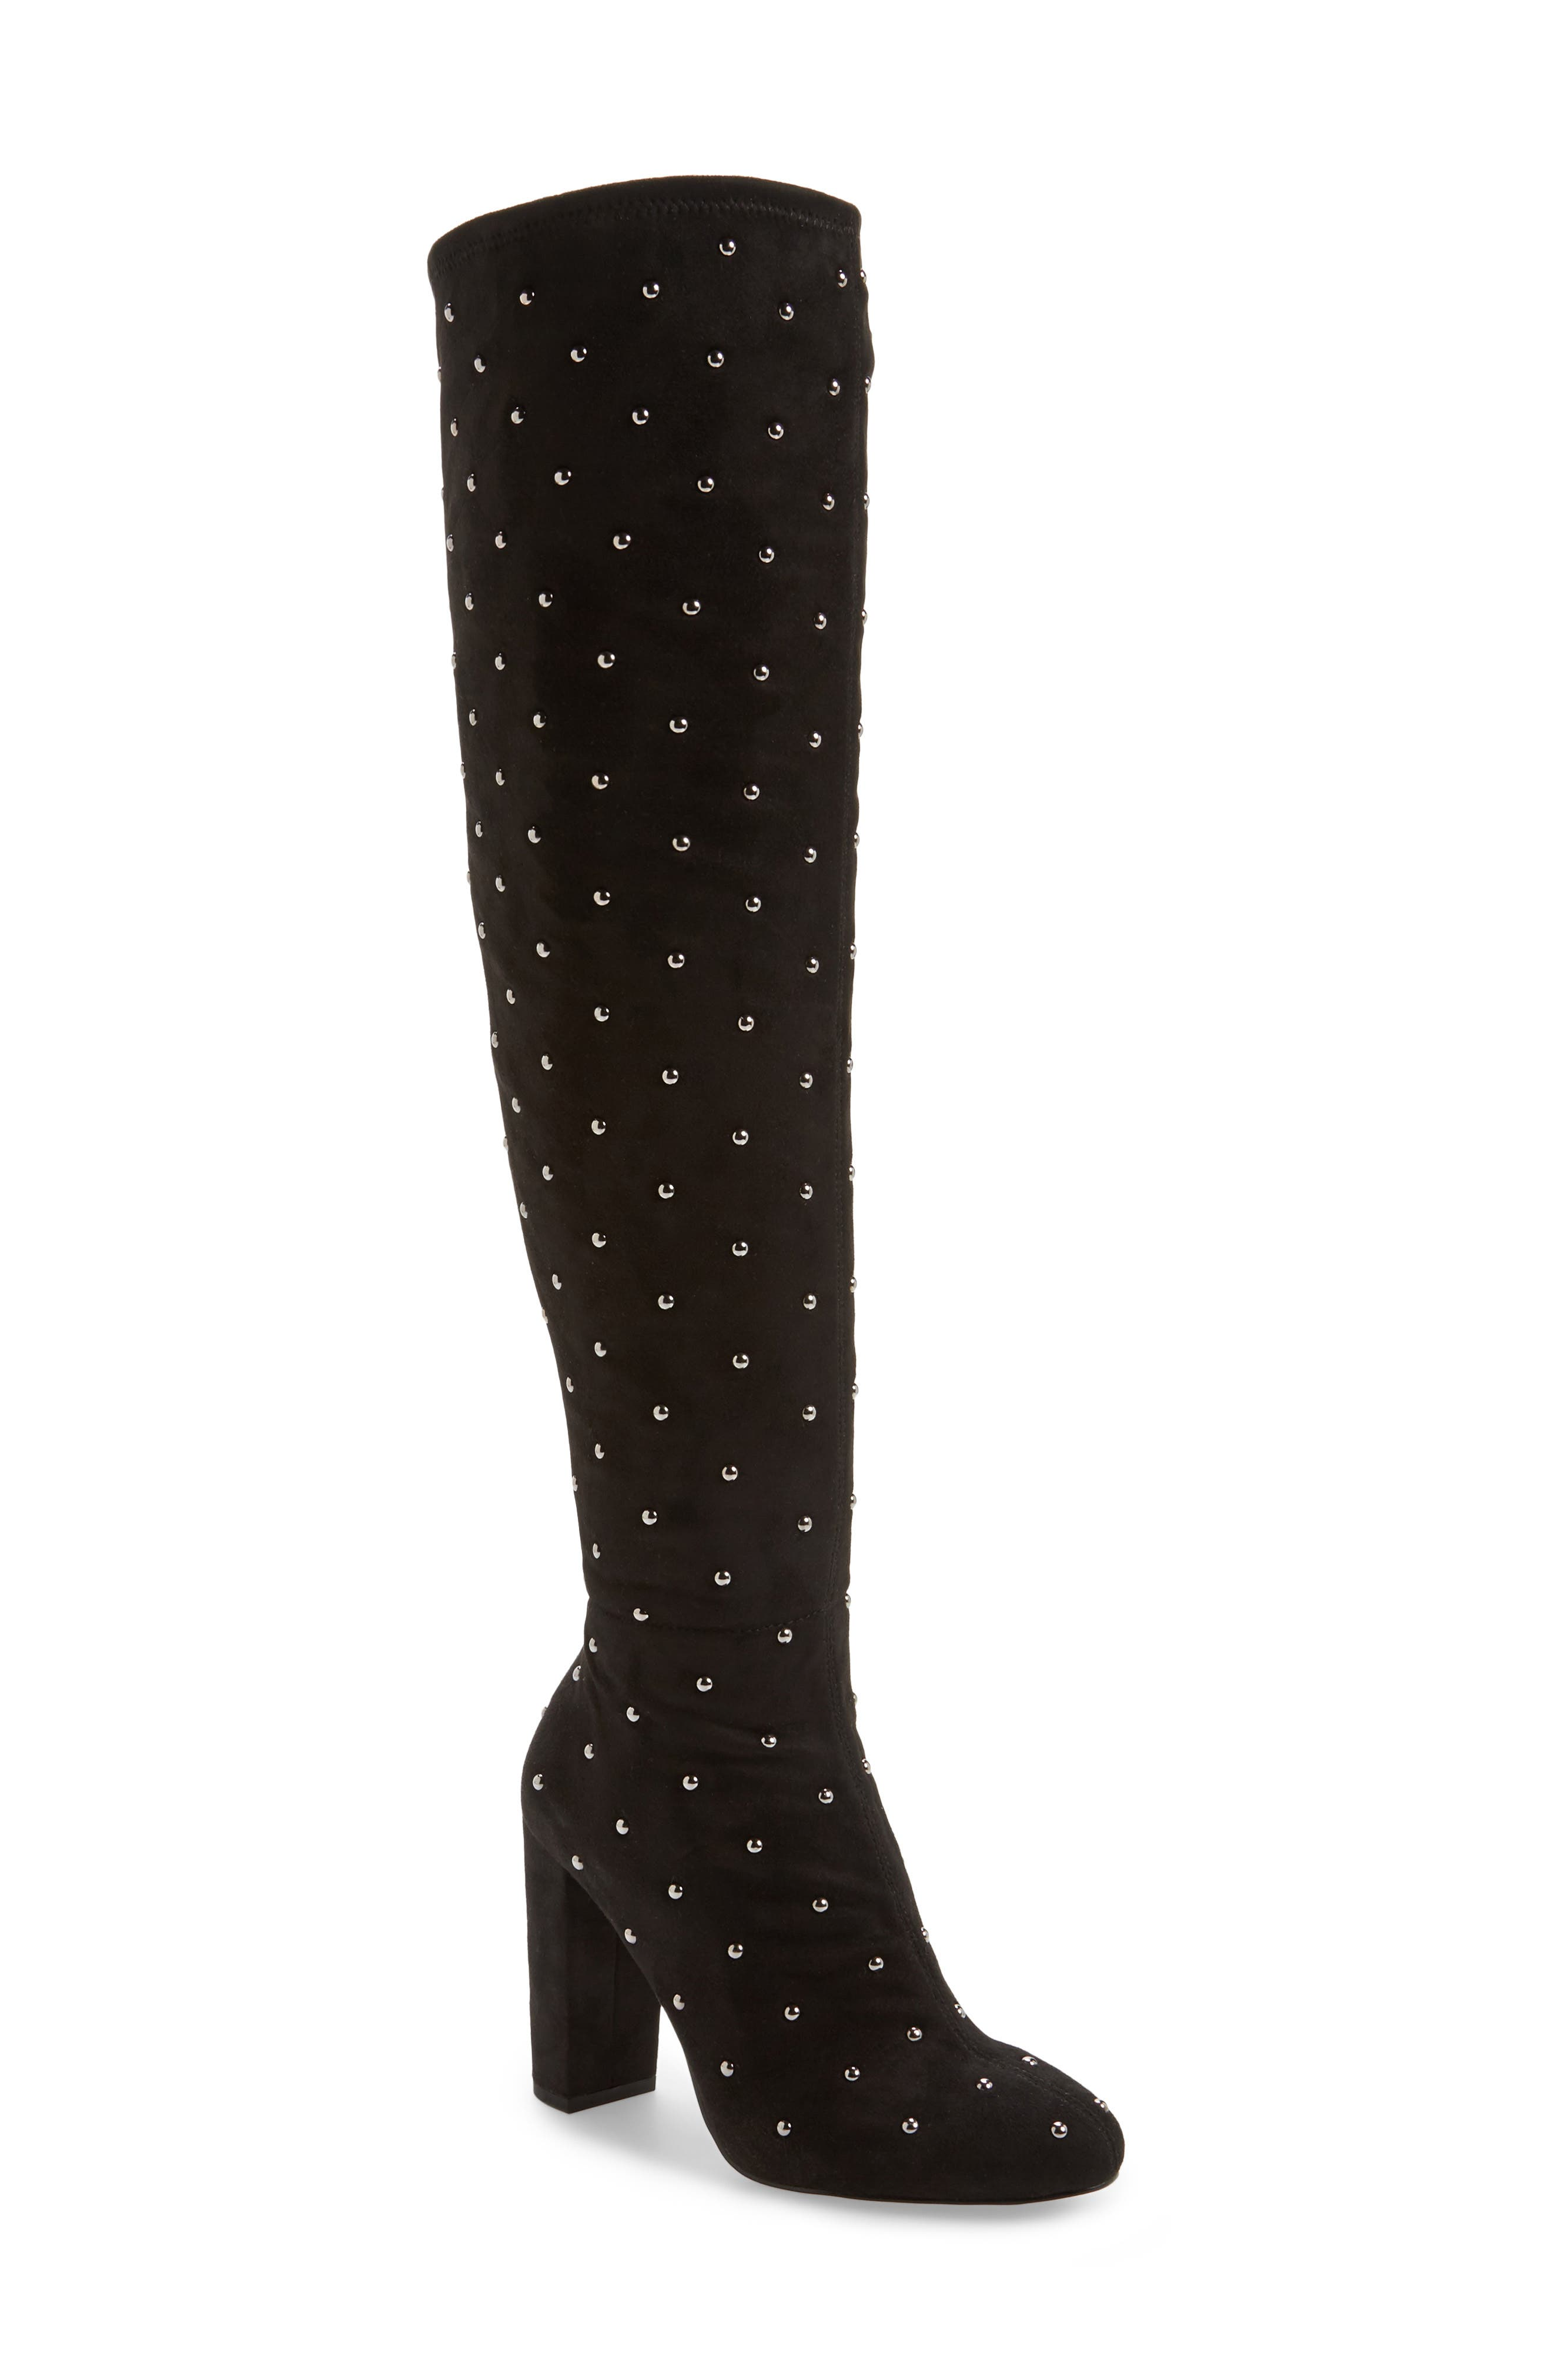 Main Image - Jessica Simpson Bressy Studded Over the Knee Boot (Women)